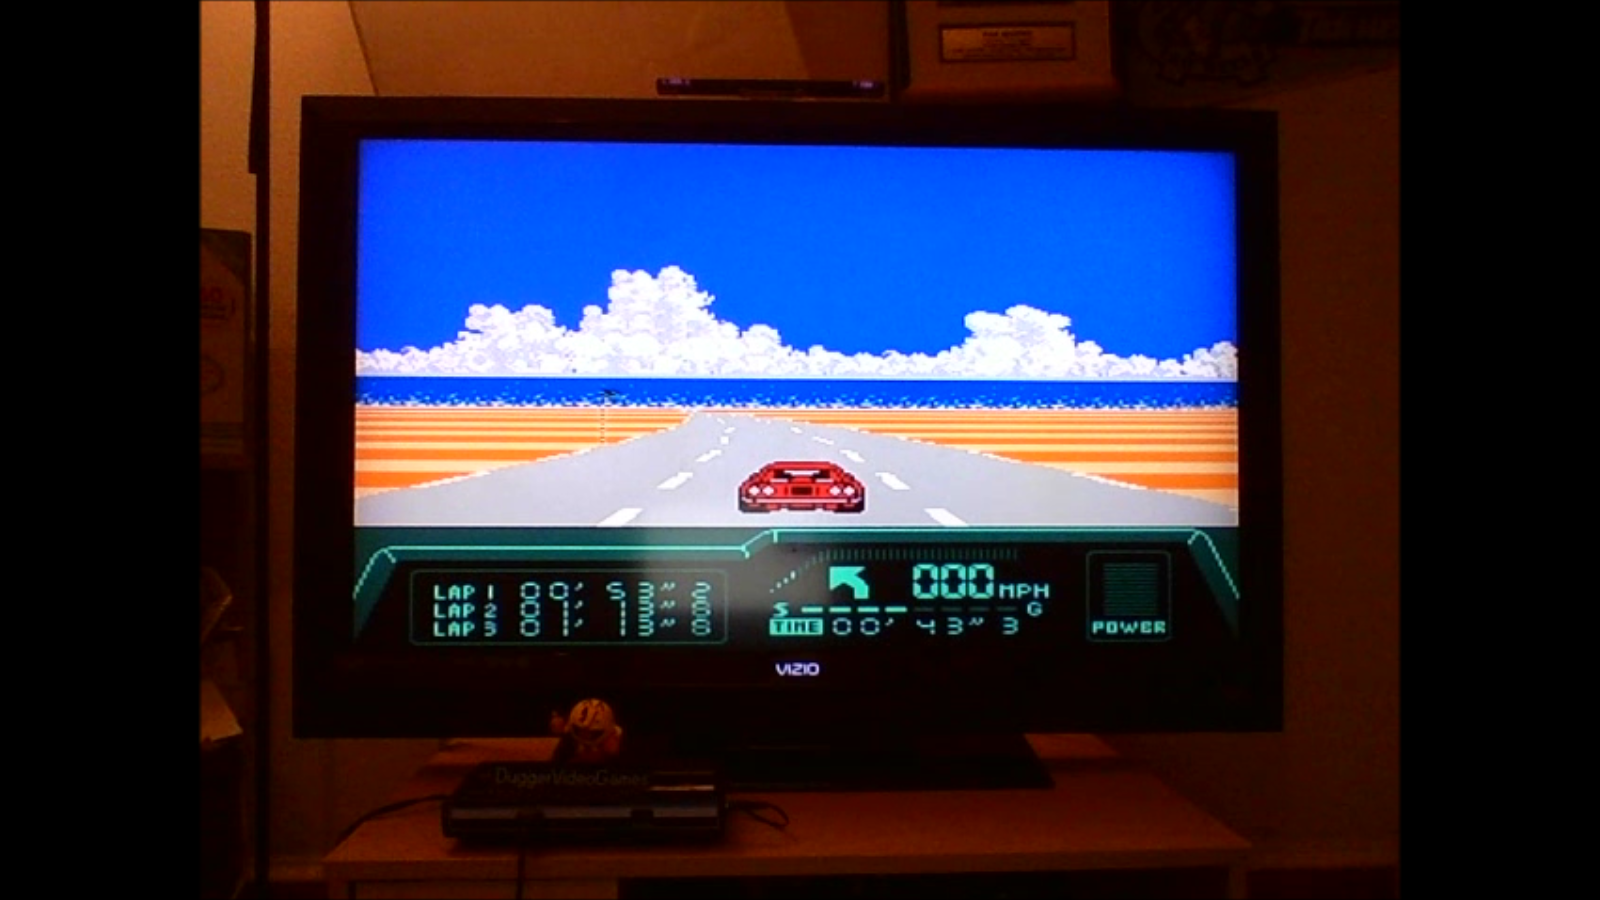 DuggerVideoGames: Rad Racer 2: Stage 1: Key West [Fastest lap] (NES/Famicom Emulated) 0:00:53.2 points on 2016-08-24 00:56:56